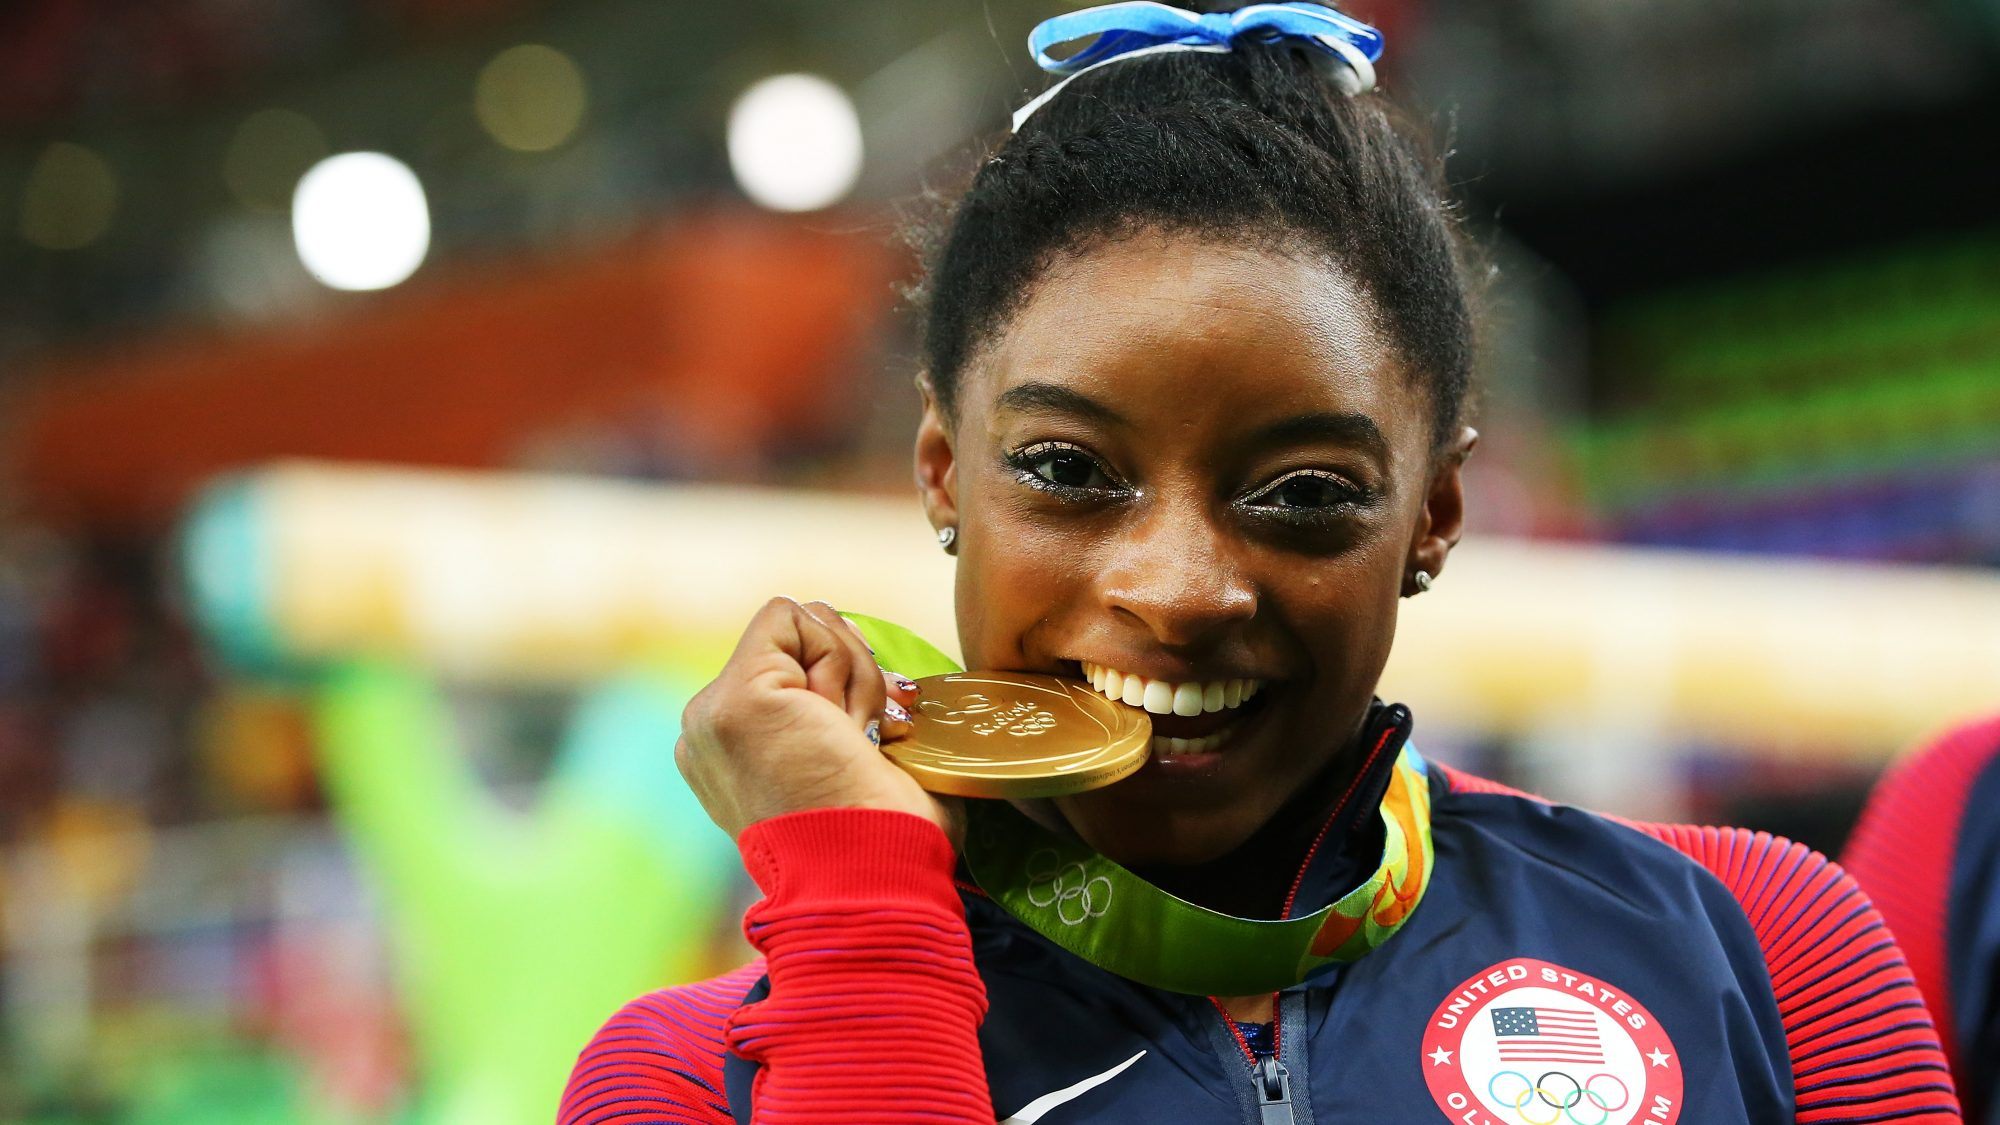 simone-biles-FT-BLOG0816.jpg